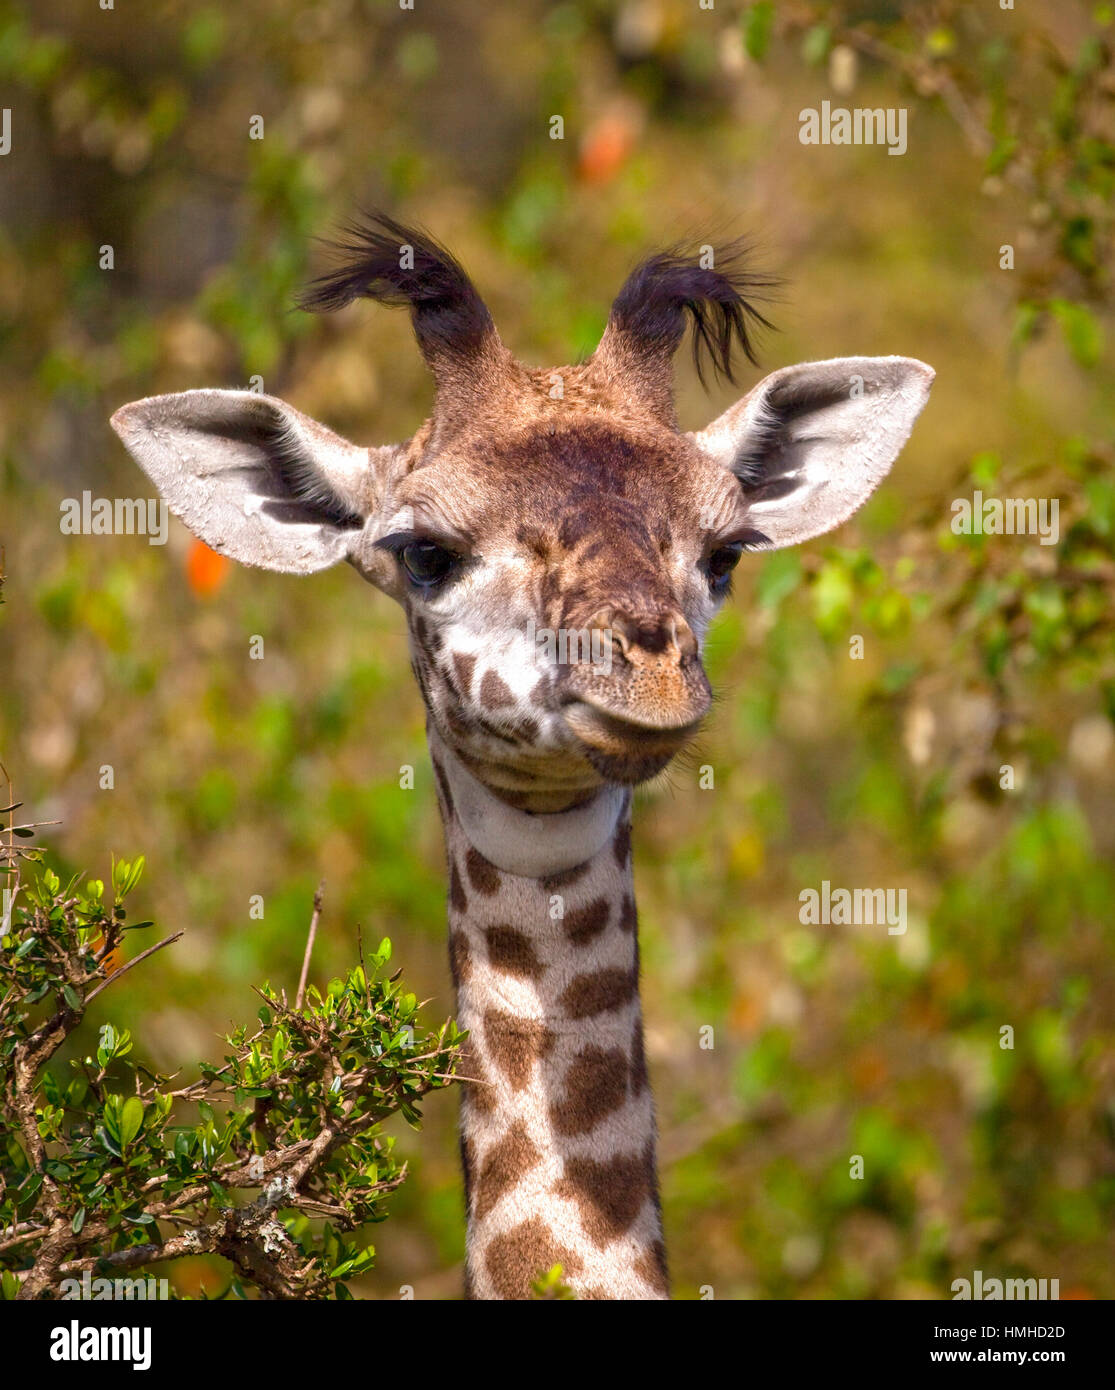 Adorable baby giraffe cercando stupido con fogliame in background in Kenya Immagini Stock